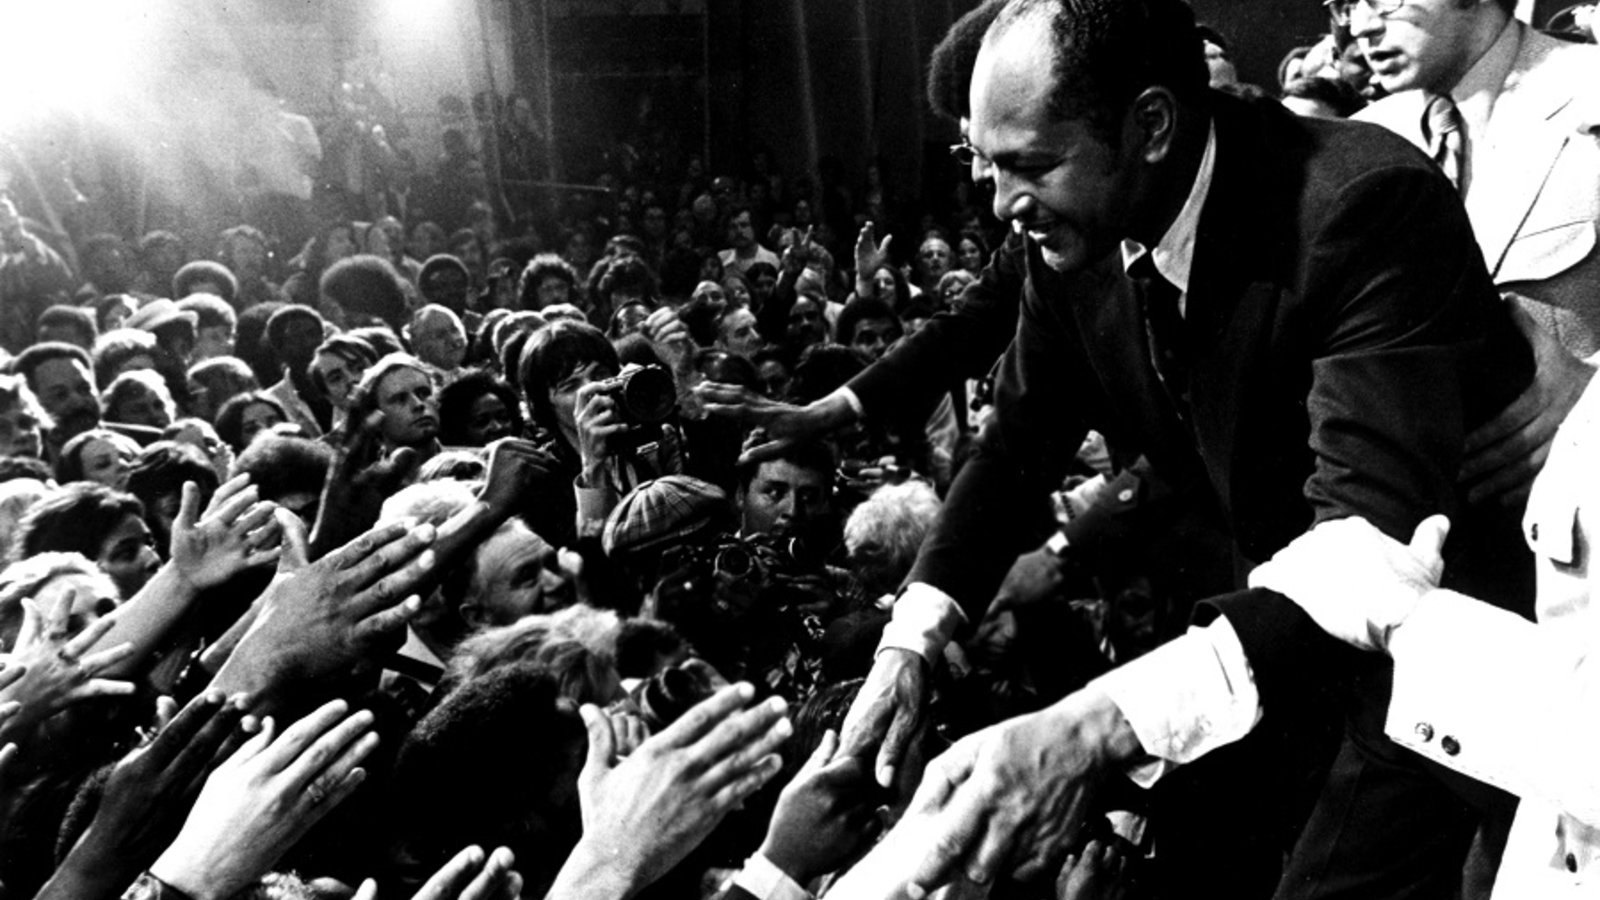 Bridging the Divide - Tom Bradley and the Politics of Race